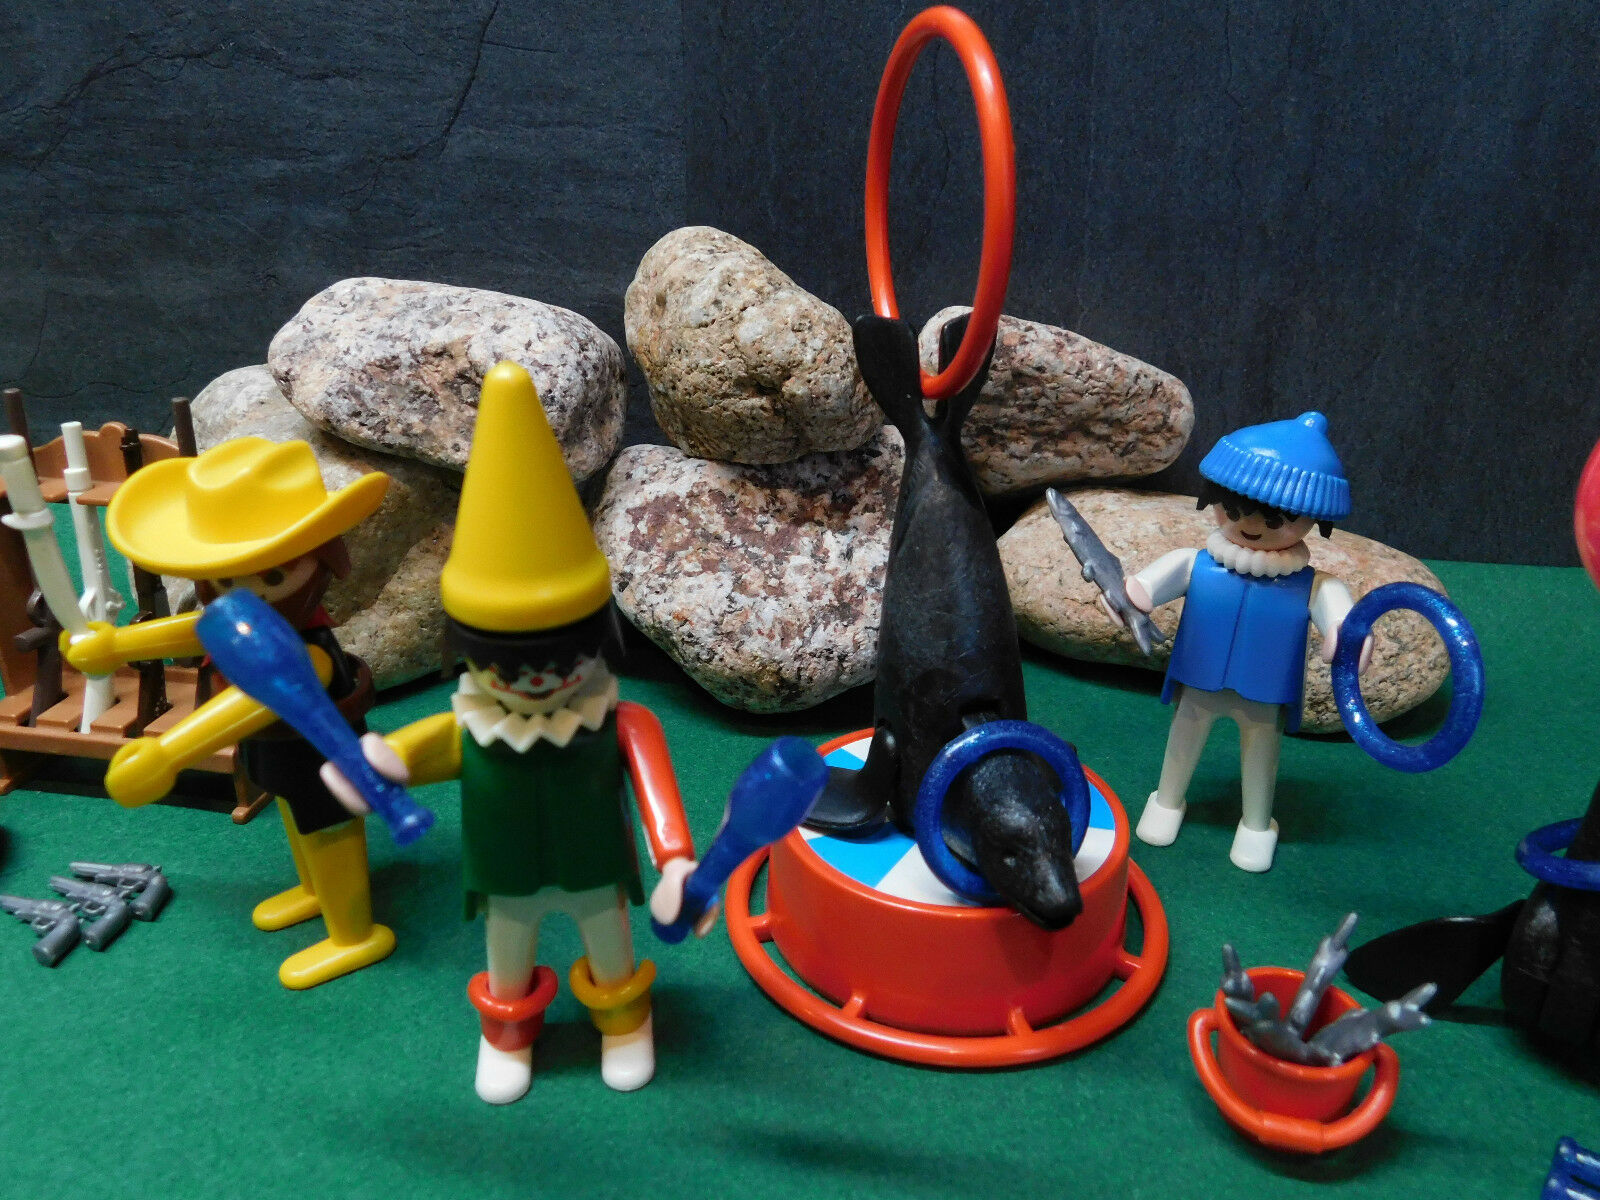 Playmobil Zirkus-Set (Messerwerfer, Seelöwen-Dressur, Clown), ohne ohne Clown), OVP 8bc7aa